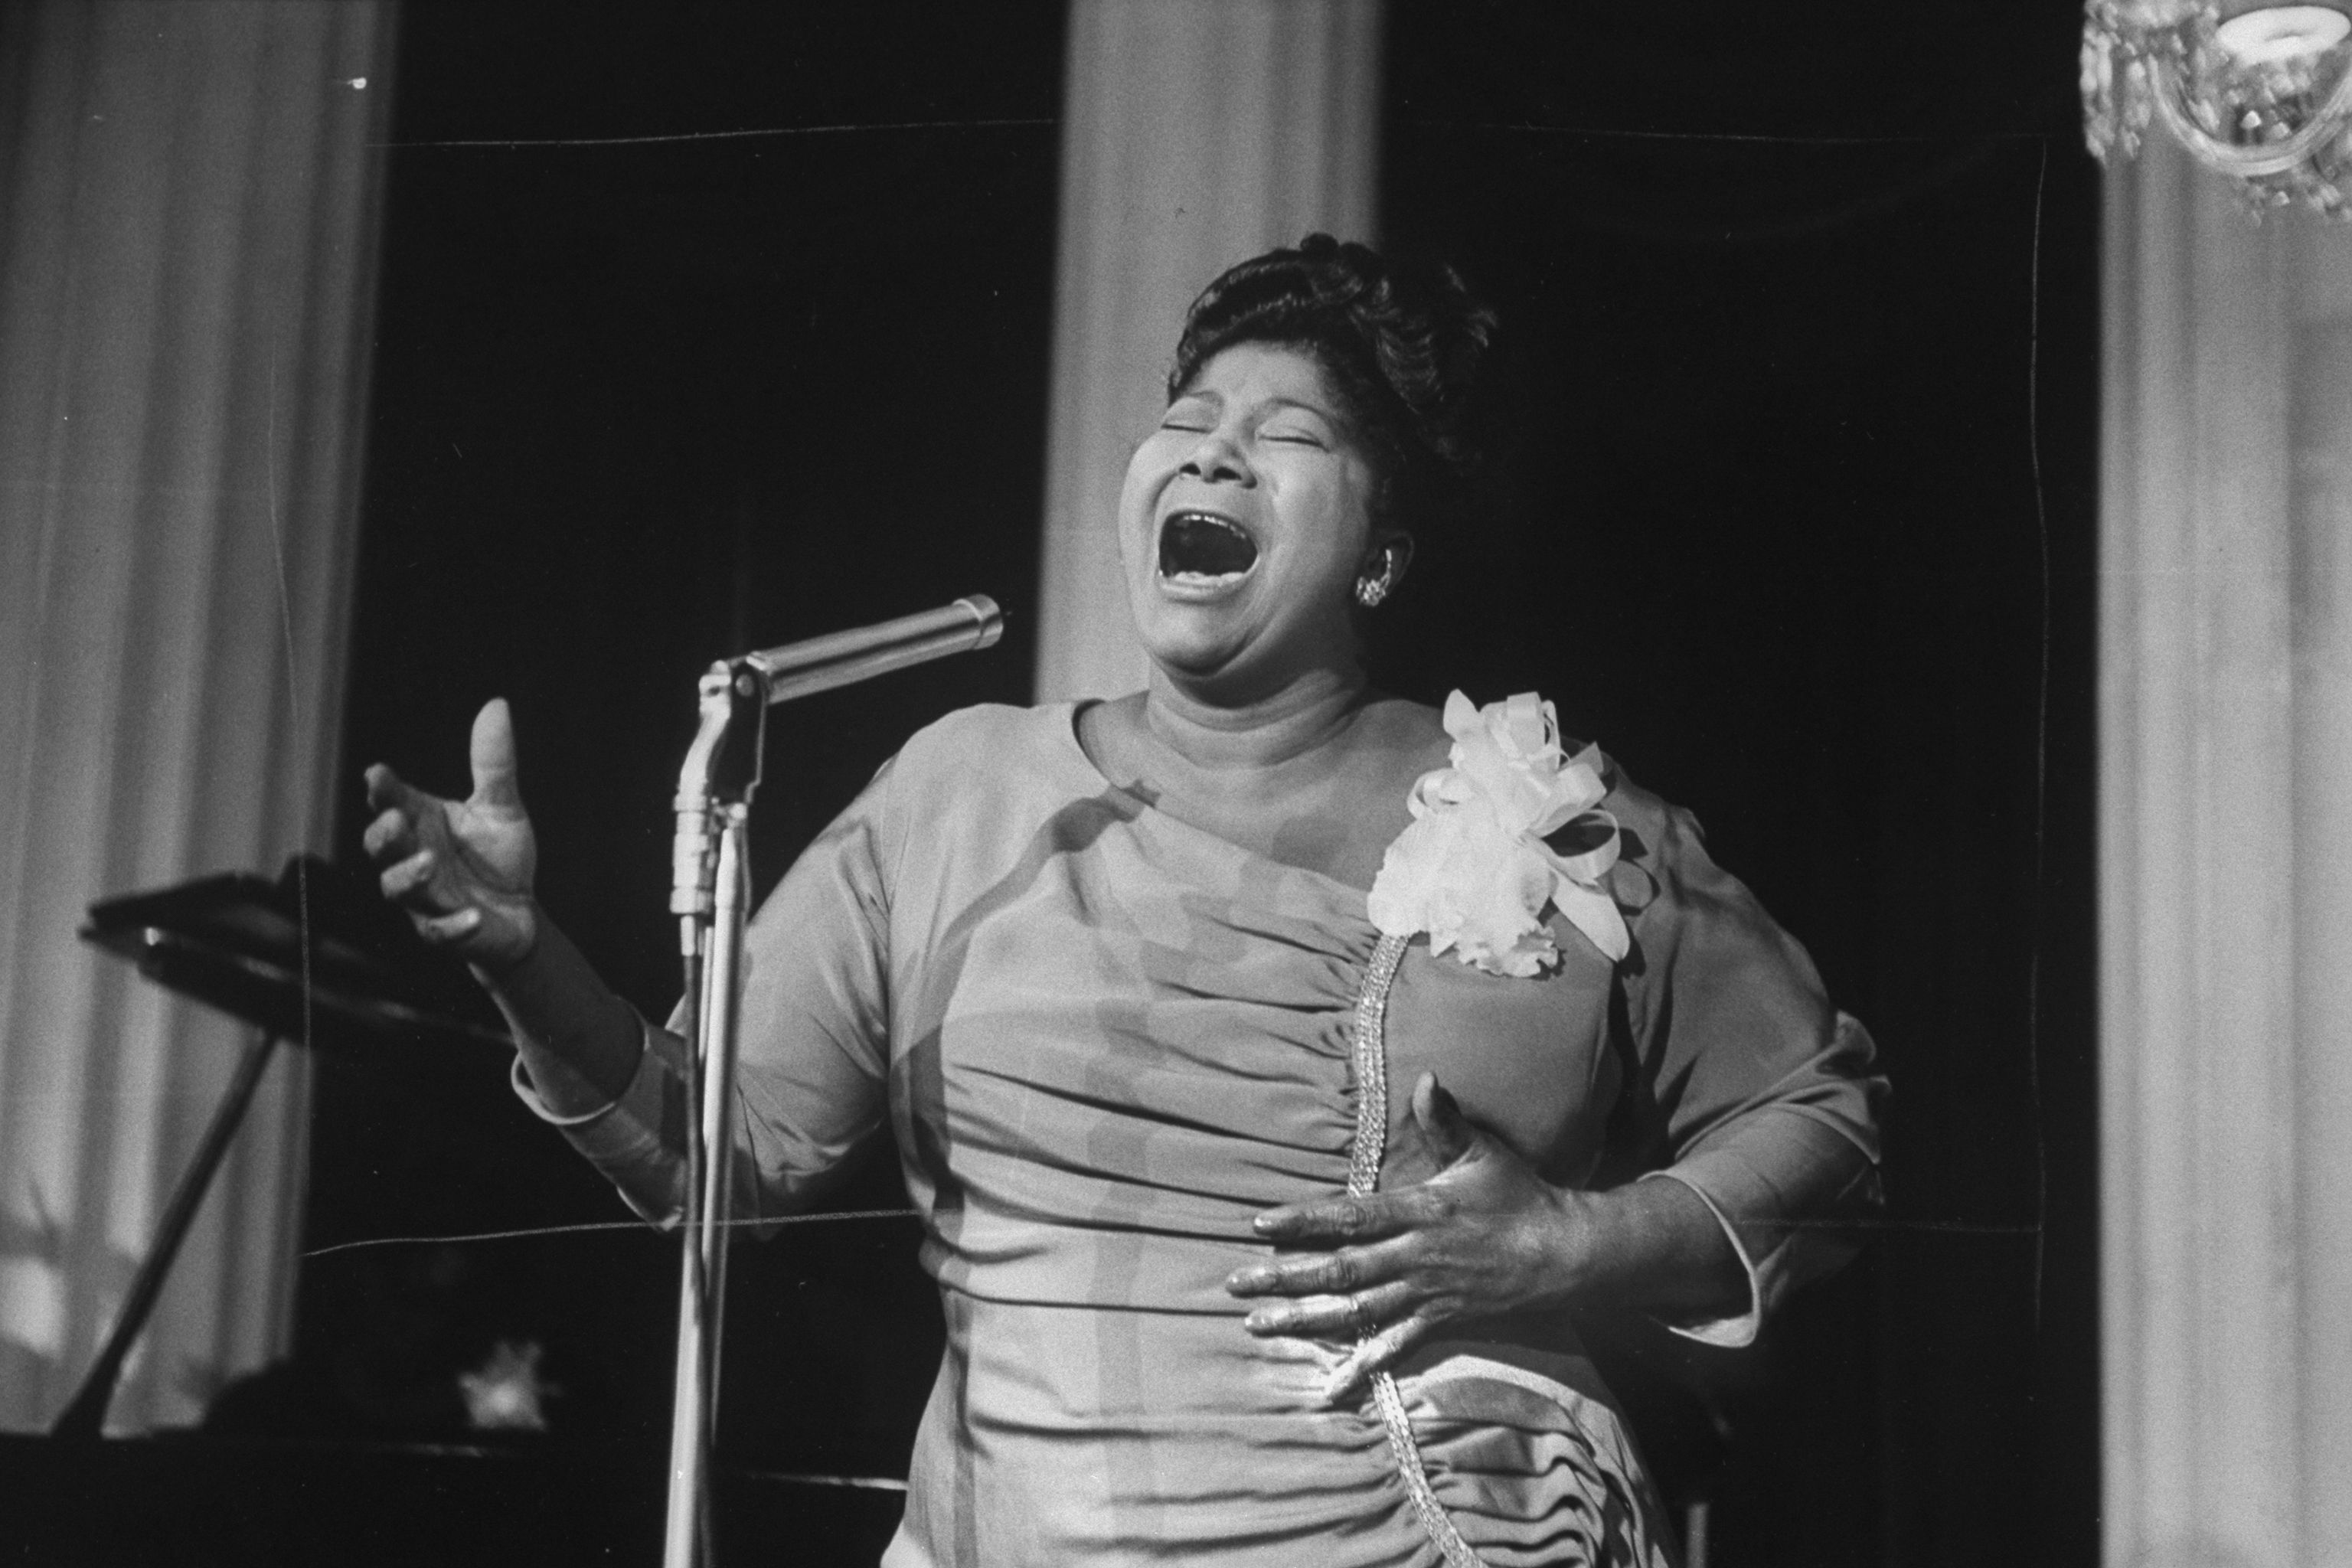 Mahalia Jackson singing at a reception in a hotel on March 01, 1961 | Photo: Getty Images